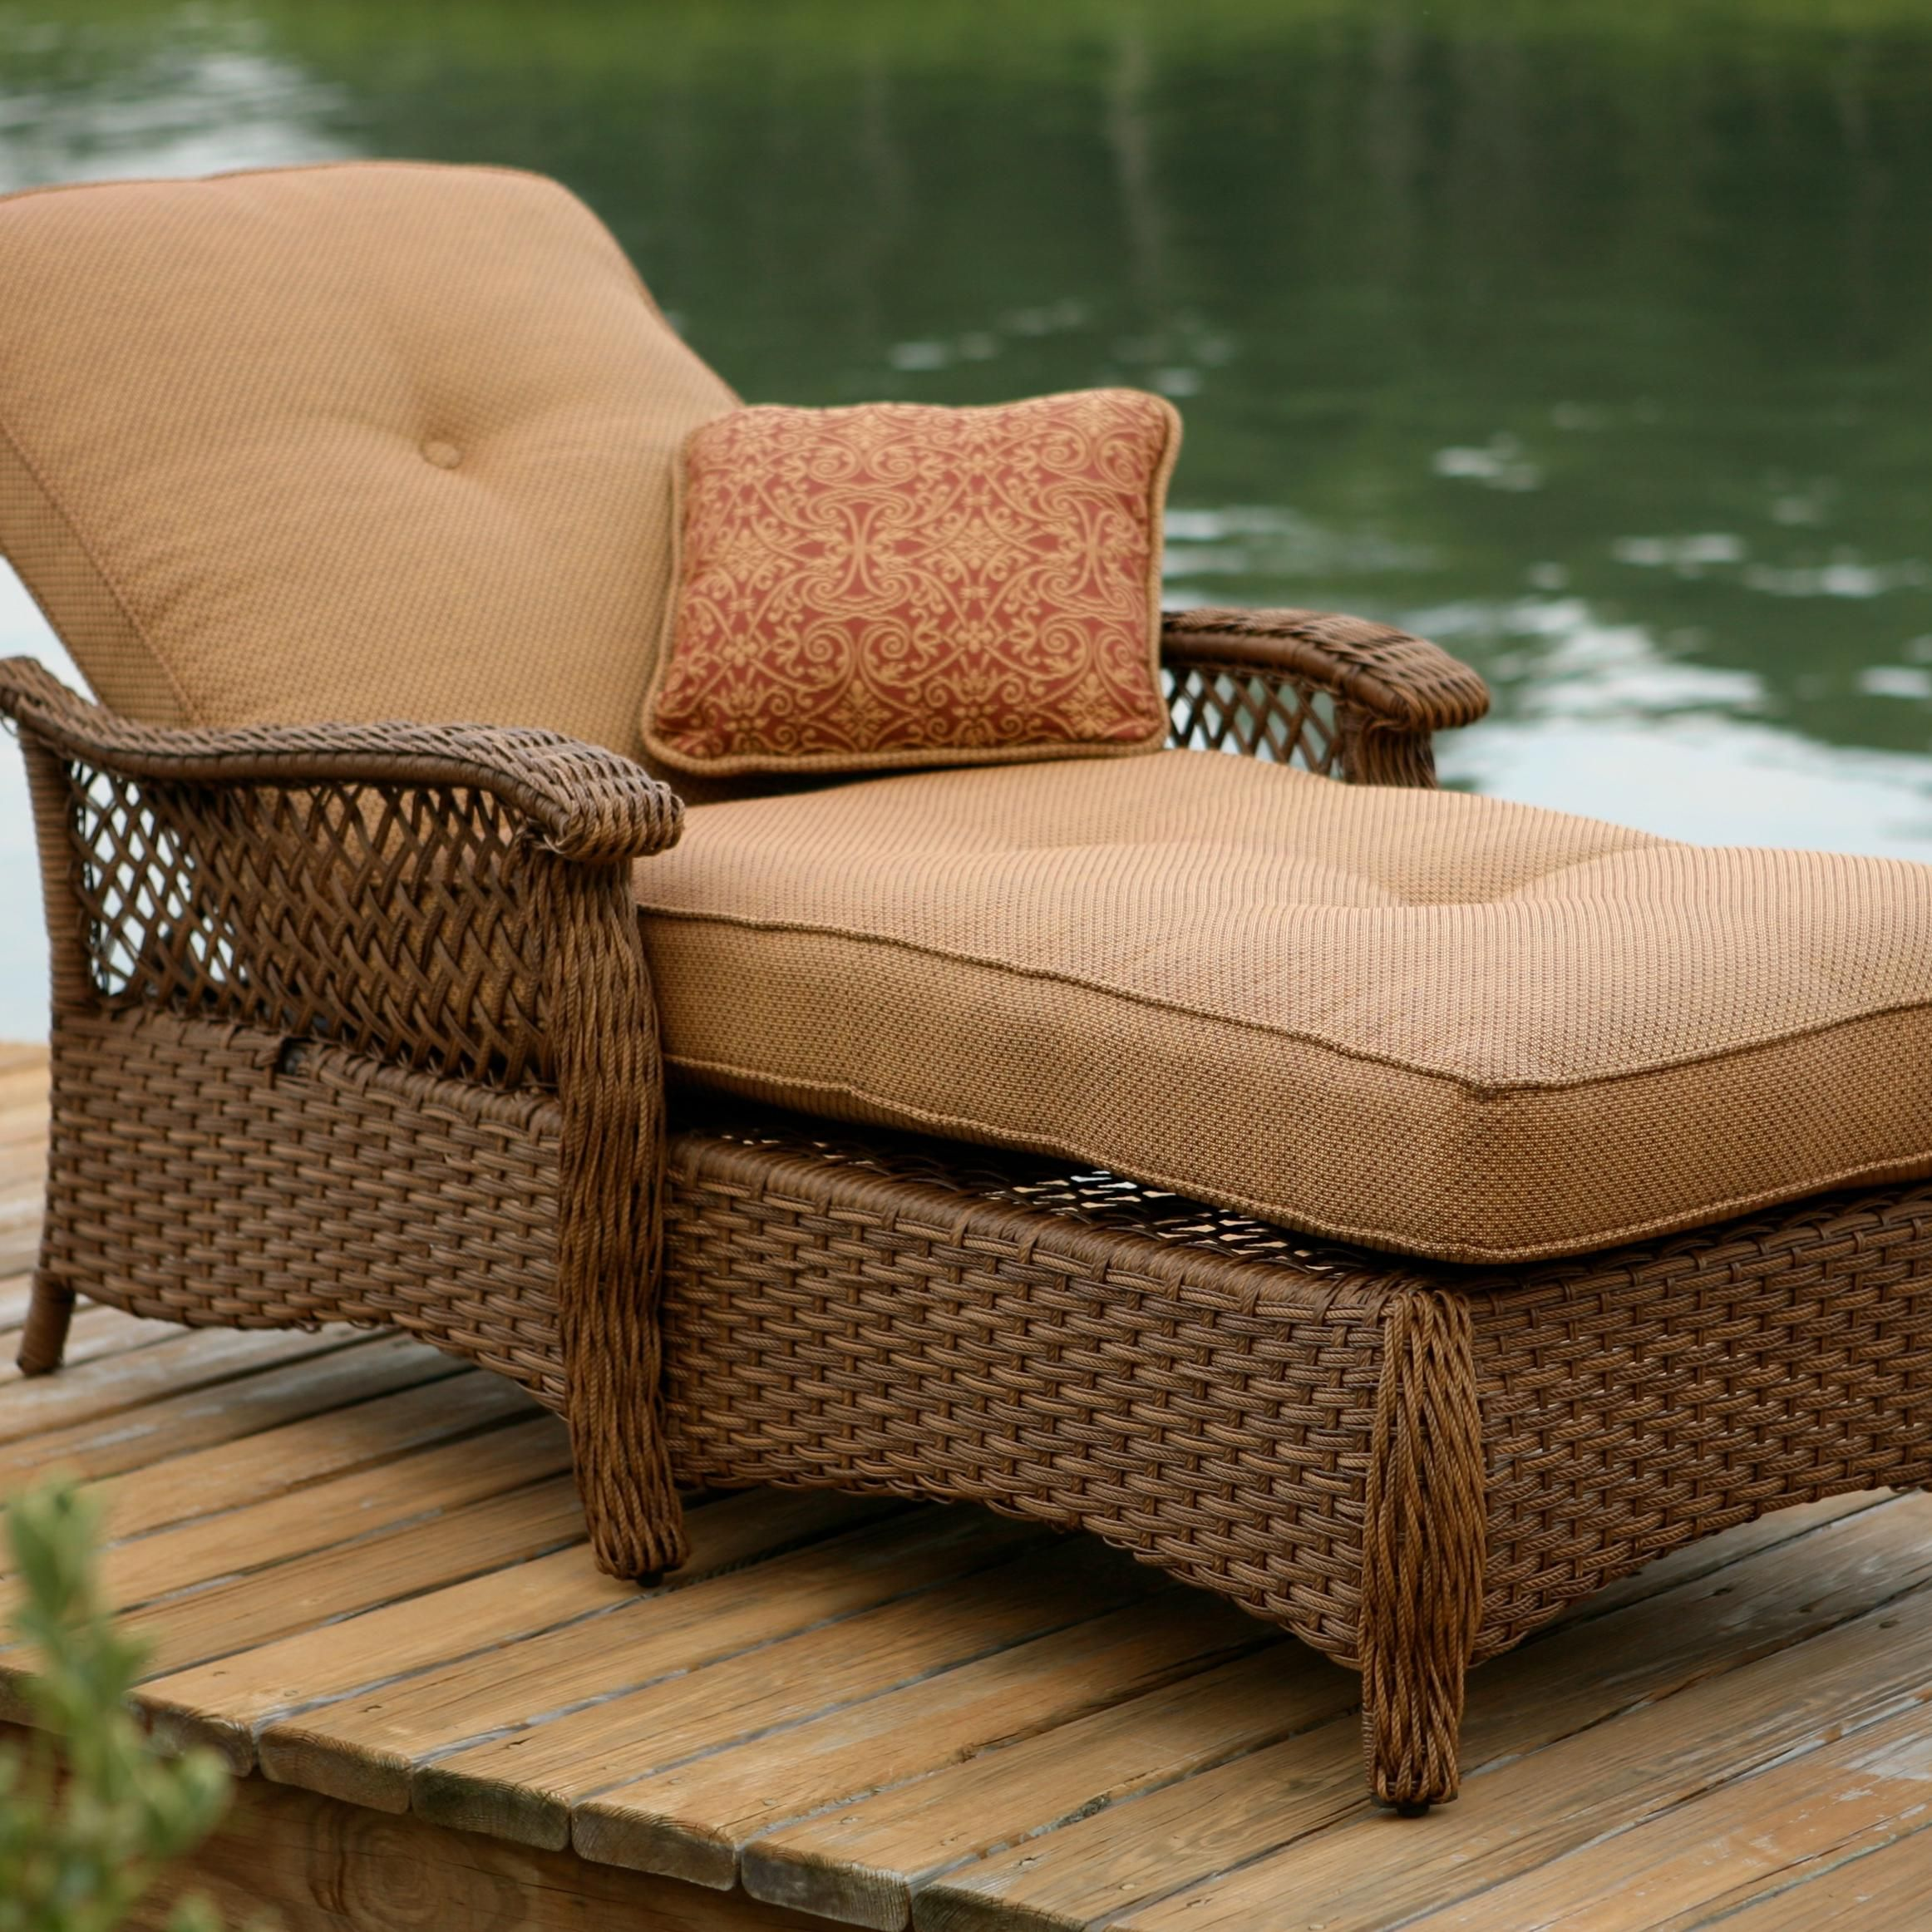 Veranda--Agio Outdoor Woven Chaise Lounge by Agio : chaise lounges for patio - Sectionals, Sofas & Couches